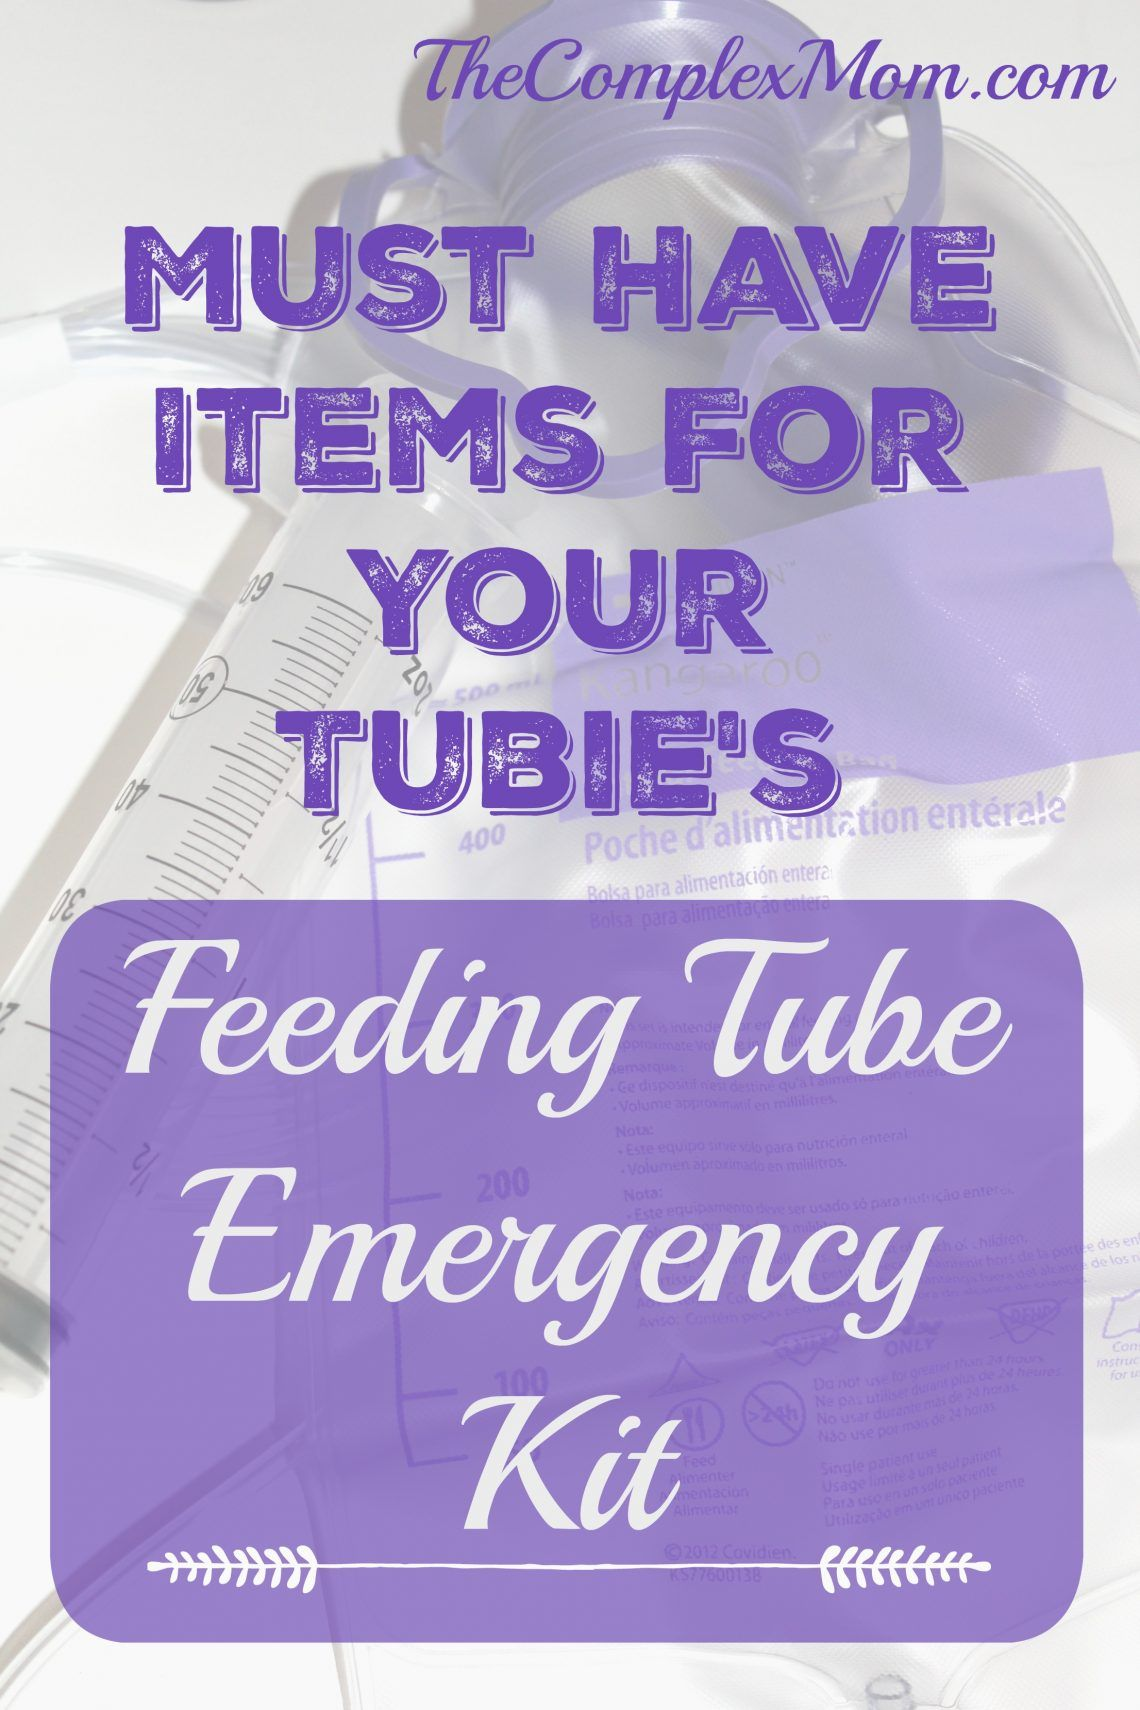 Feeding Tube Emergency Kit The Products And Tools I Used To Create A Life Saving Feeding Tube Emergency Kit For Daycare And Home Use